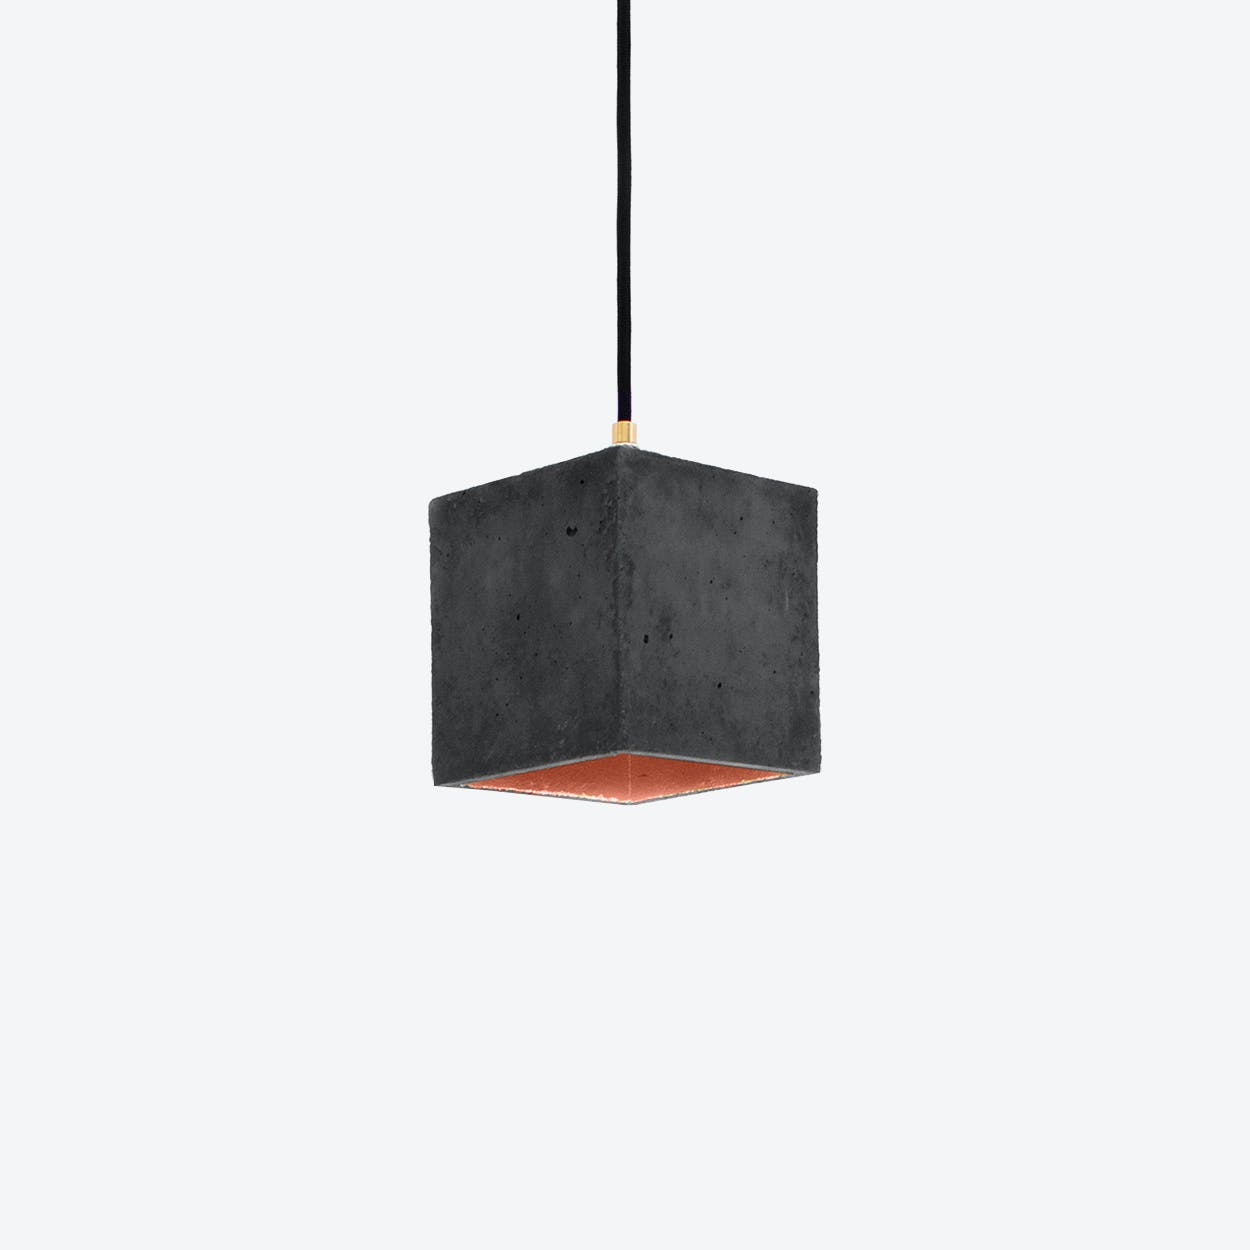 Concrete Pendant Light Cubic B1 in Dark Grey and Copper